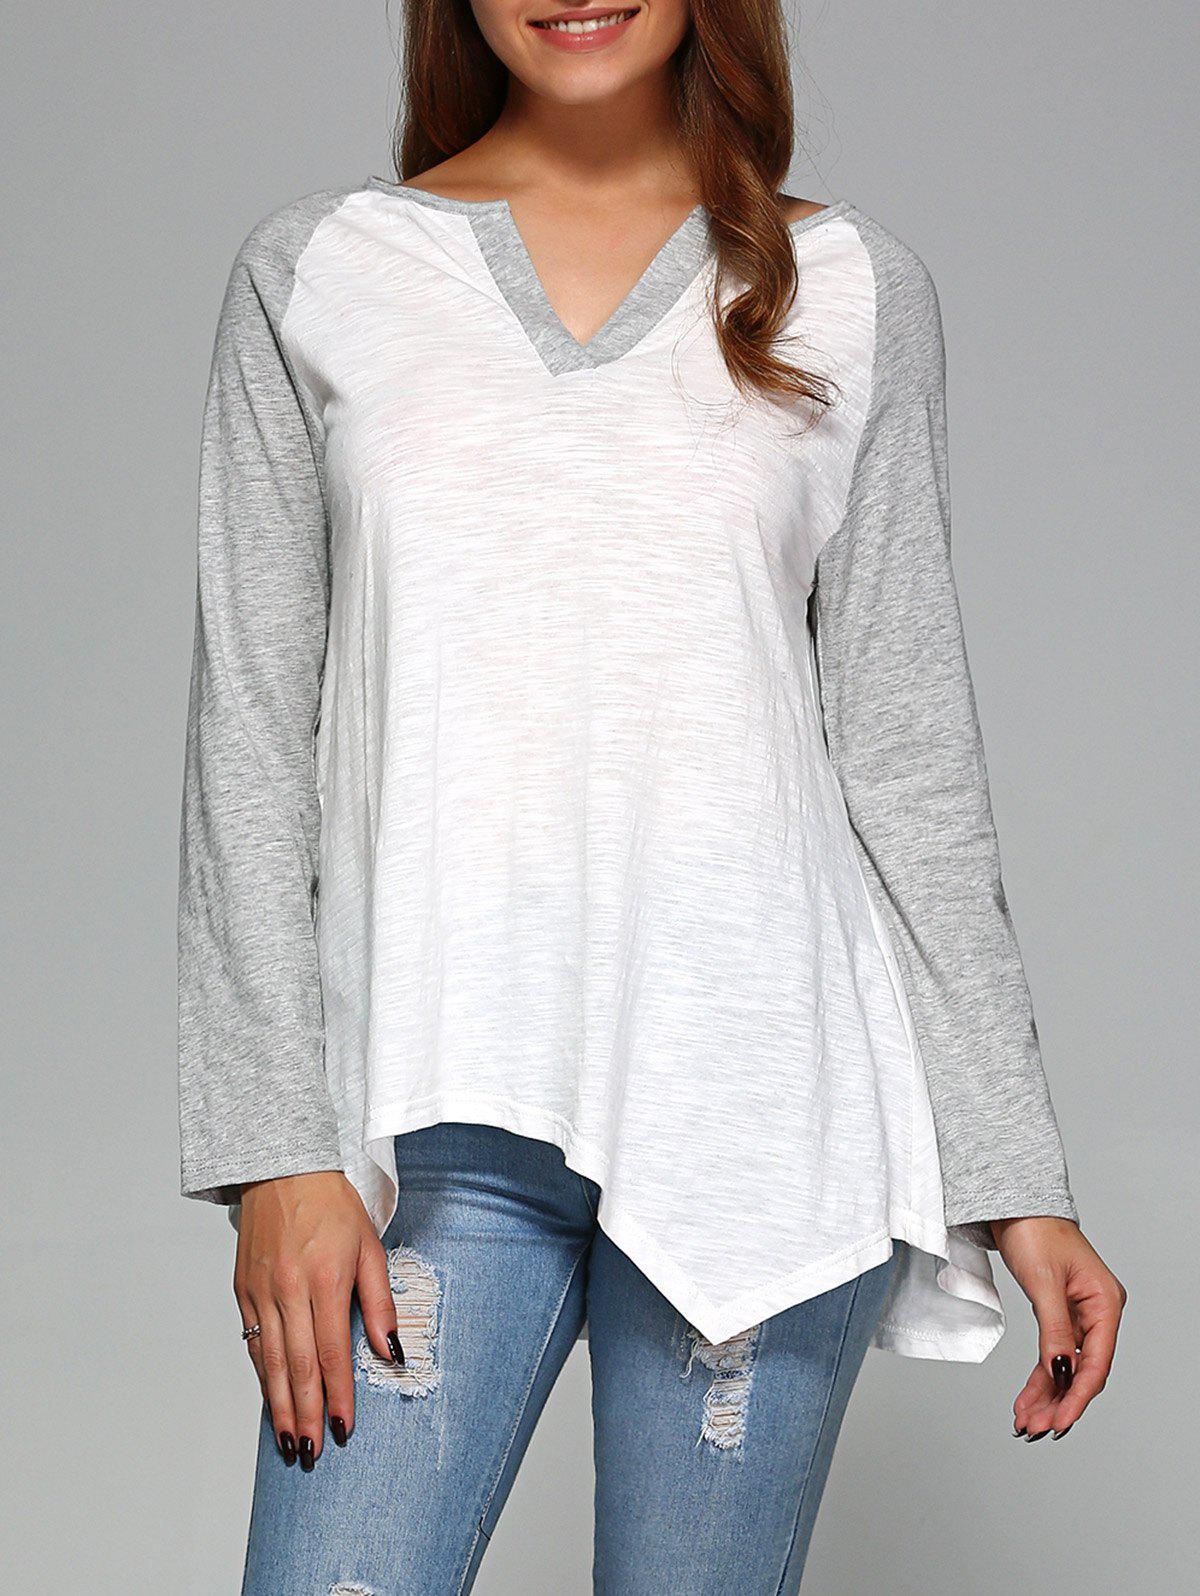 Raglan Sleeve Asymmetrical T-Shirt - GREY/WHITE M